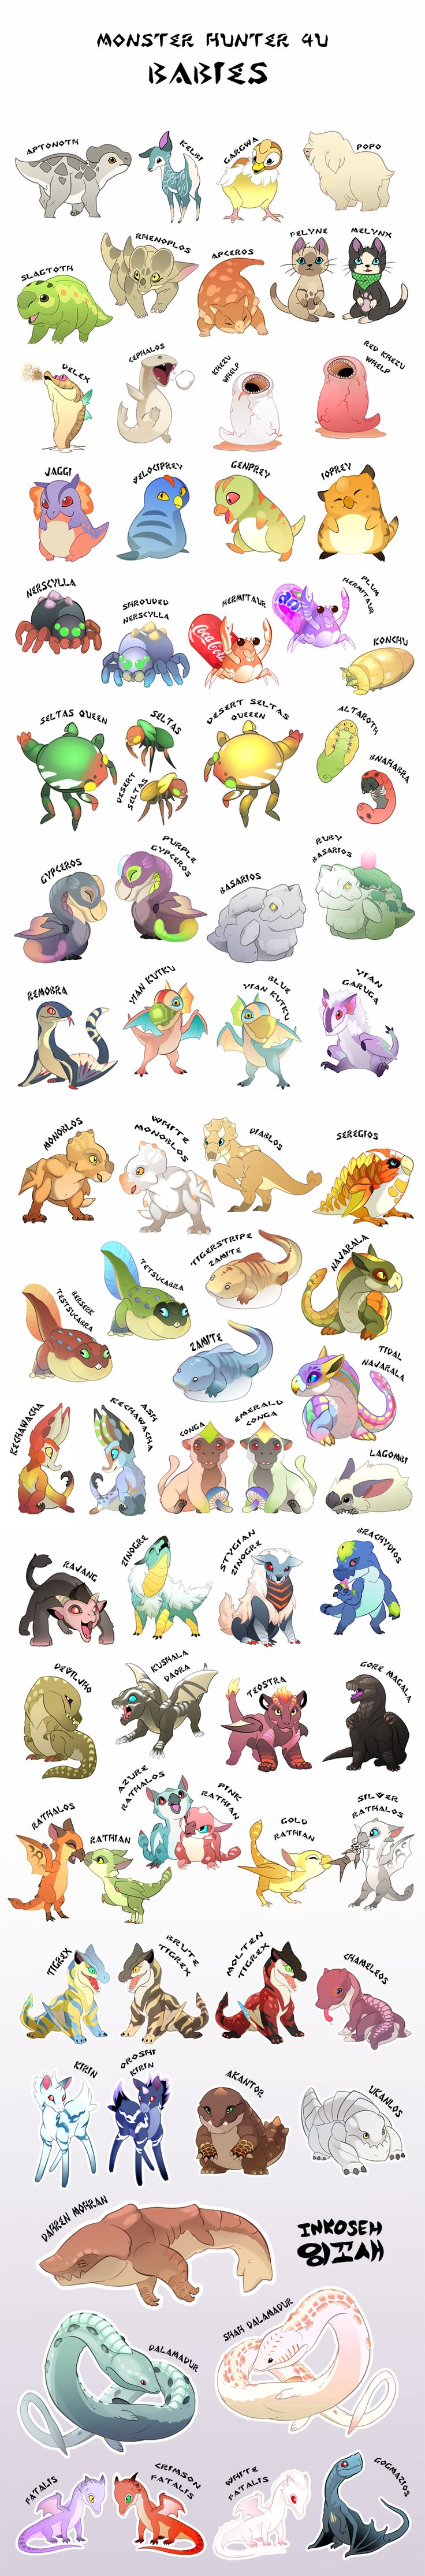 Monster Hunter 4U Babies by macawnivore on DeviantArt